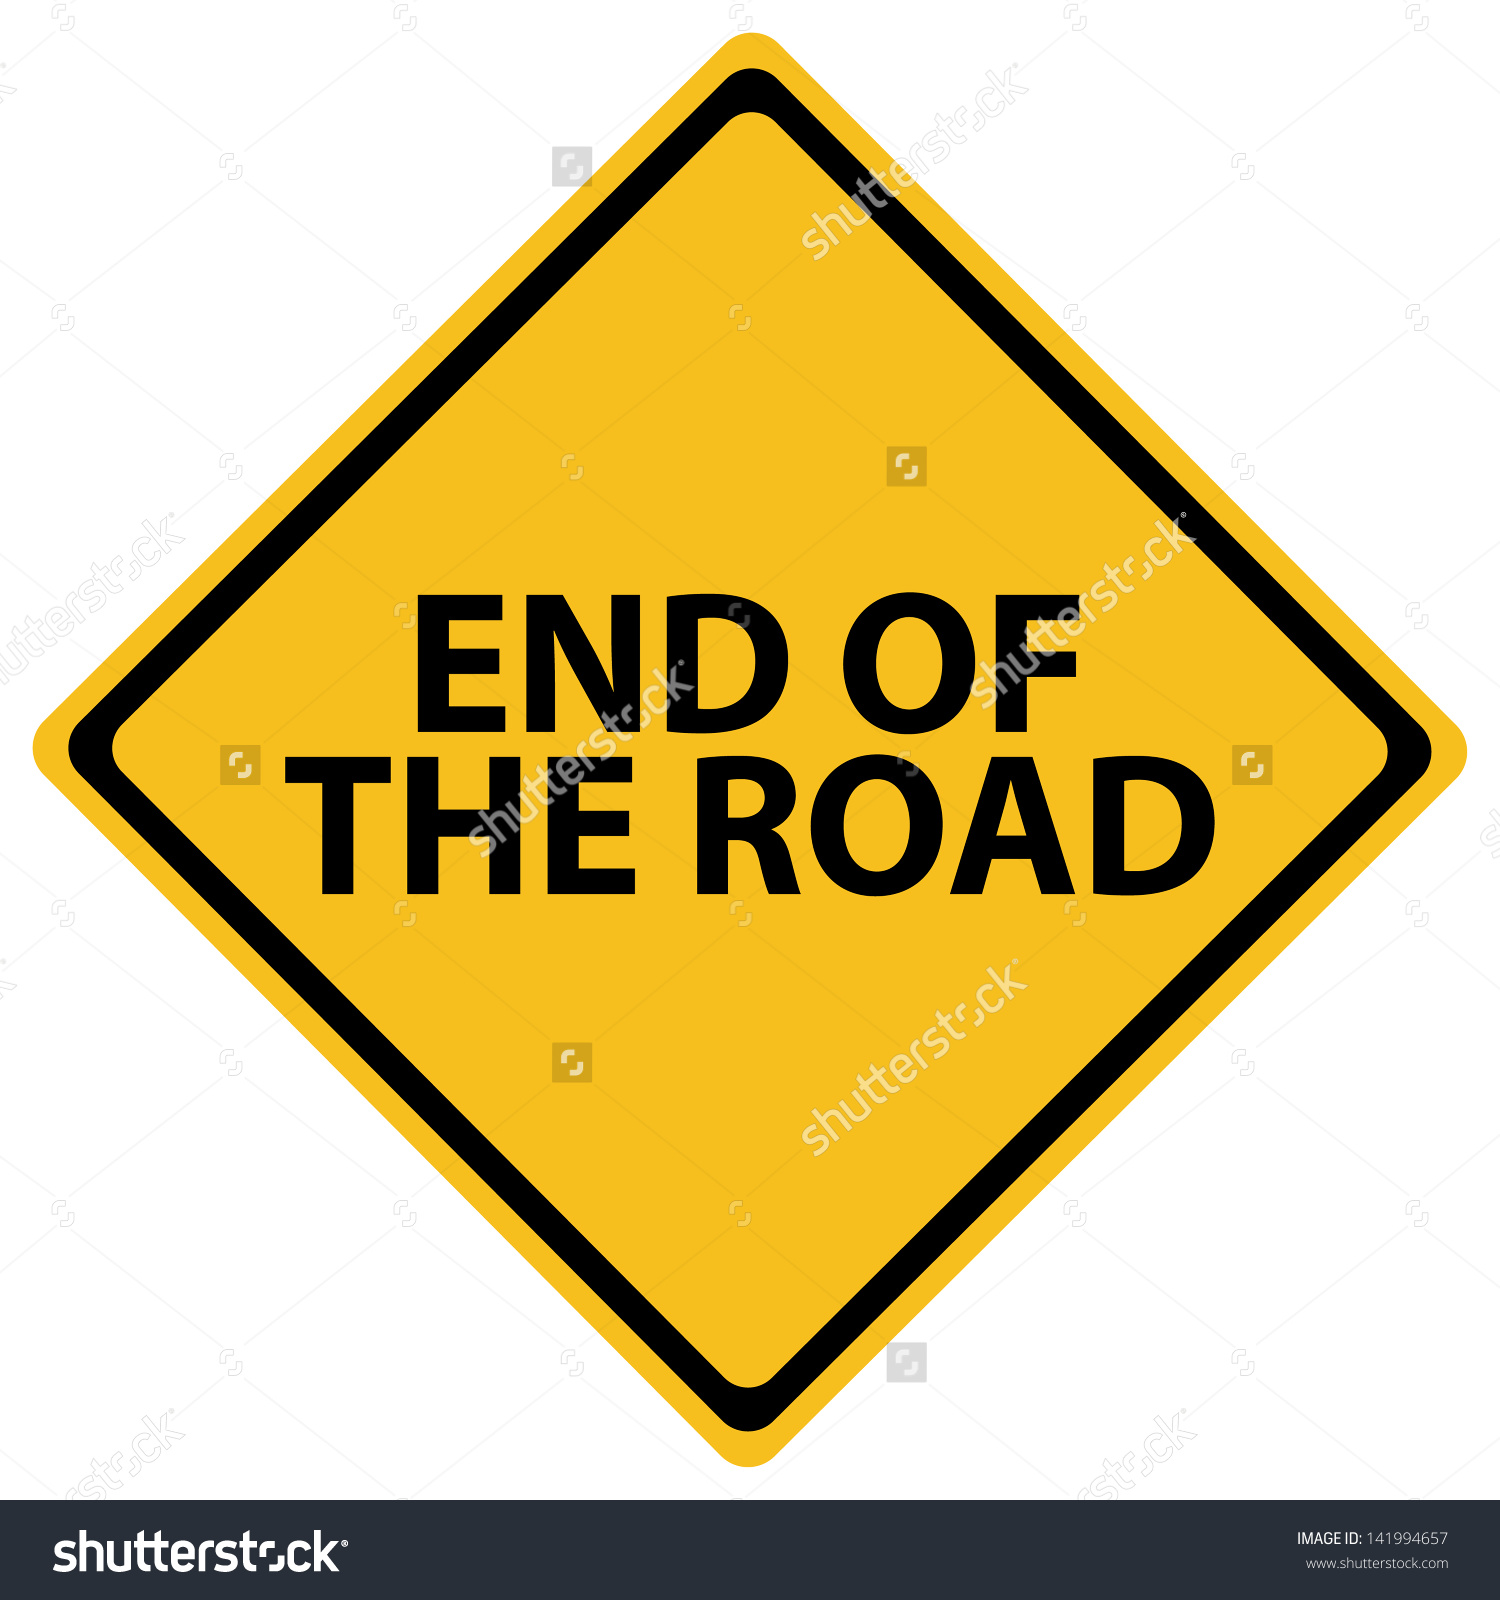 End of the road clipart.